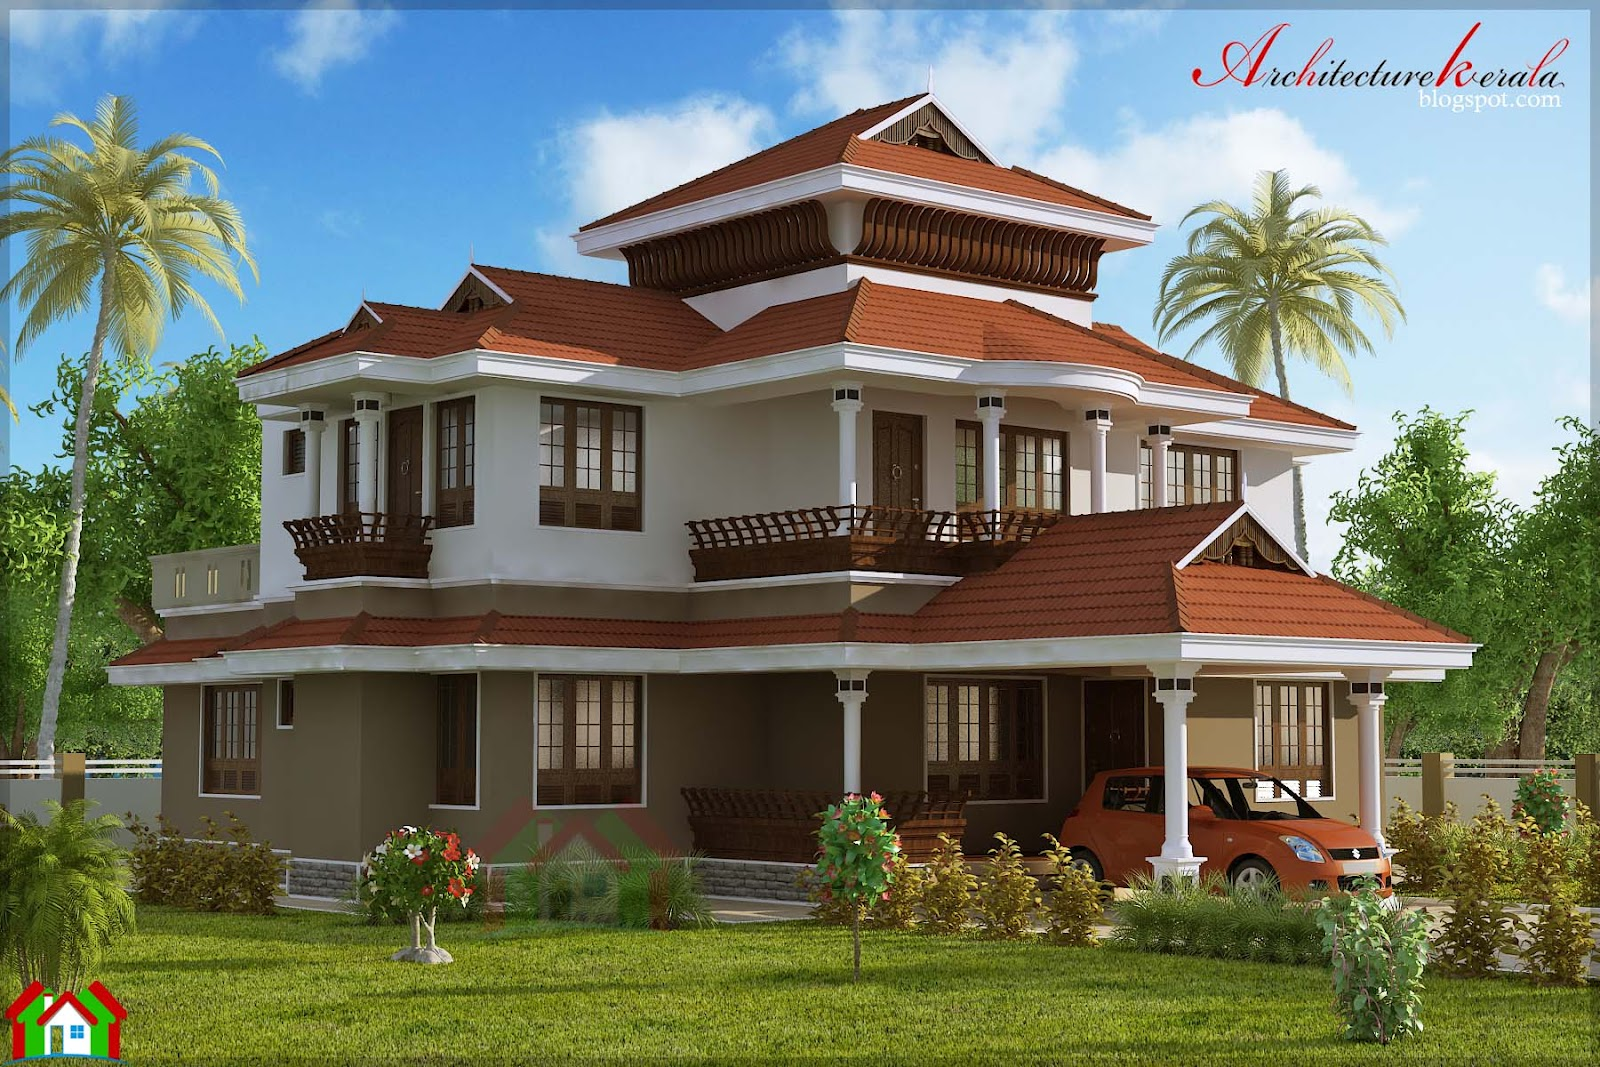 4 bed room traditional style house architecture kerala for Conventional style home